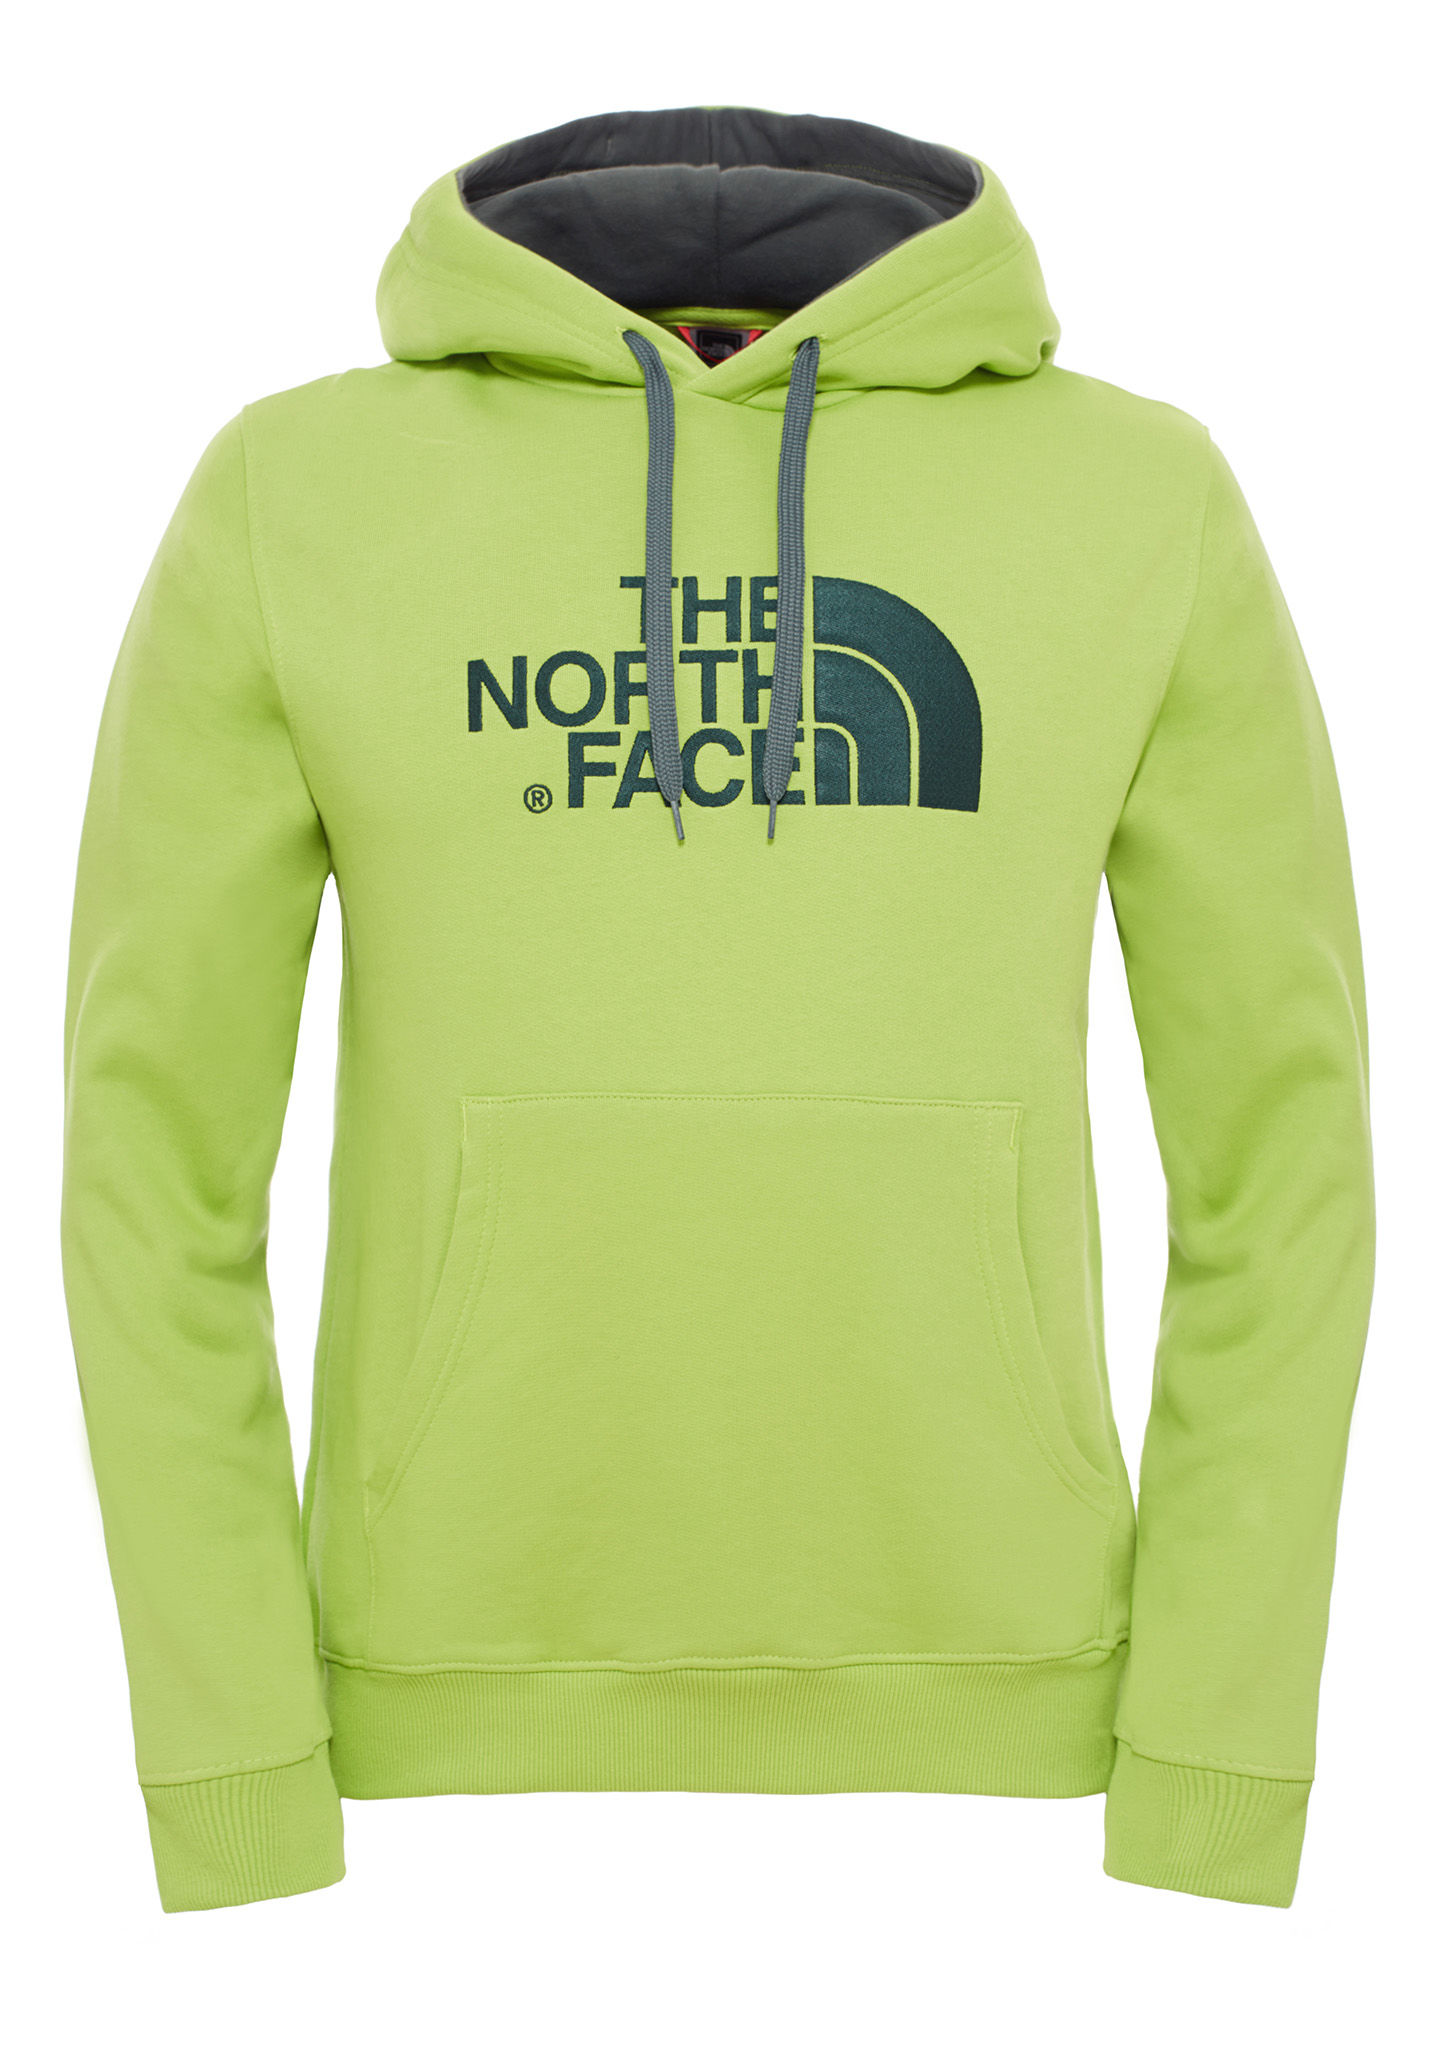 THE NORTH FACE Drew Peak - Felpa con cappuccio per Uomo - Verde - Planet  Sports bed33f6bcdba